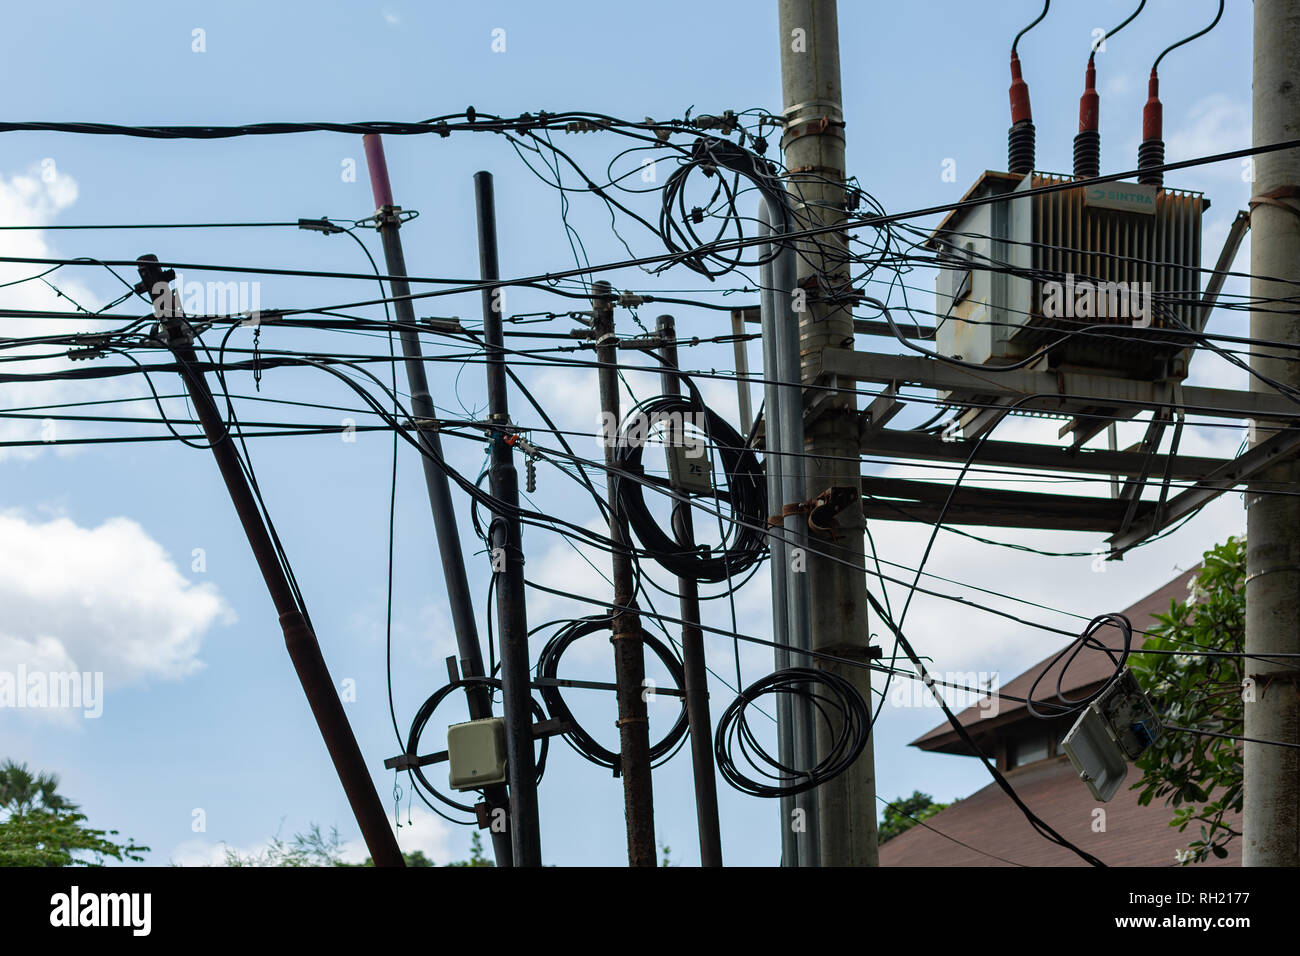 Loose Wiring Stock Photos & Loose Wiring Stock Images - Alamy on